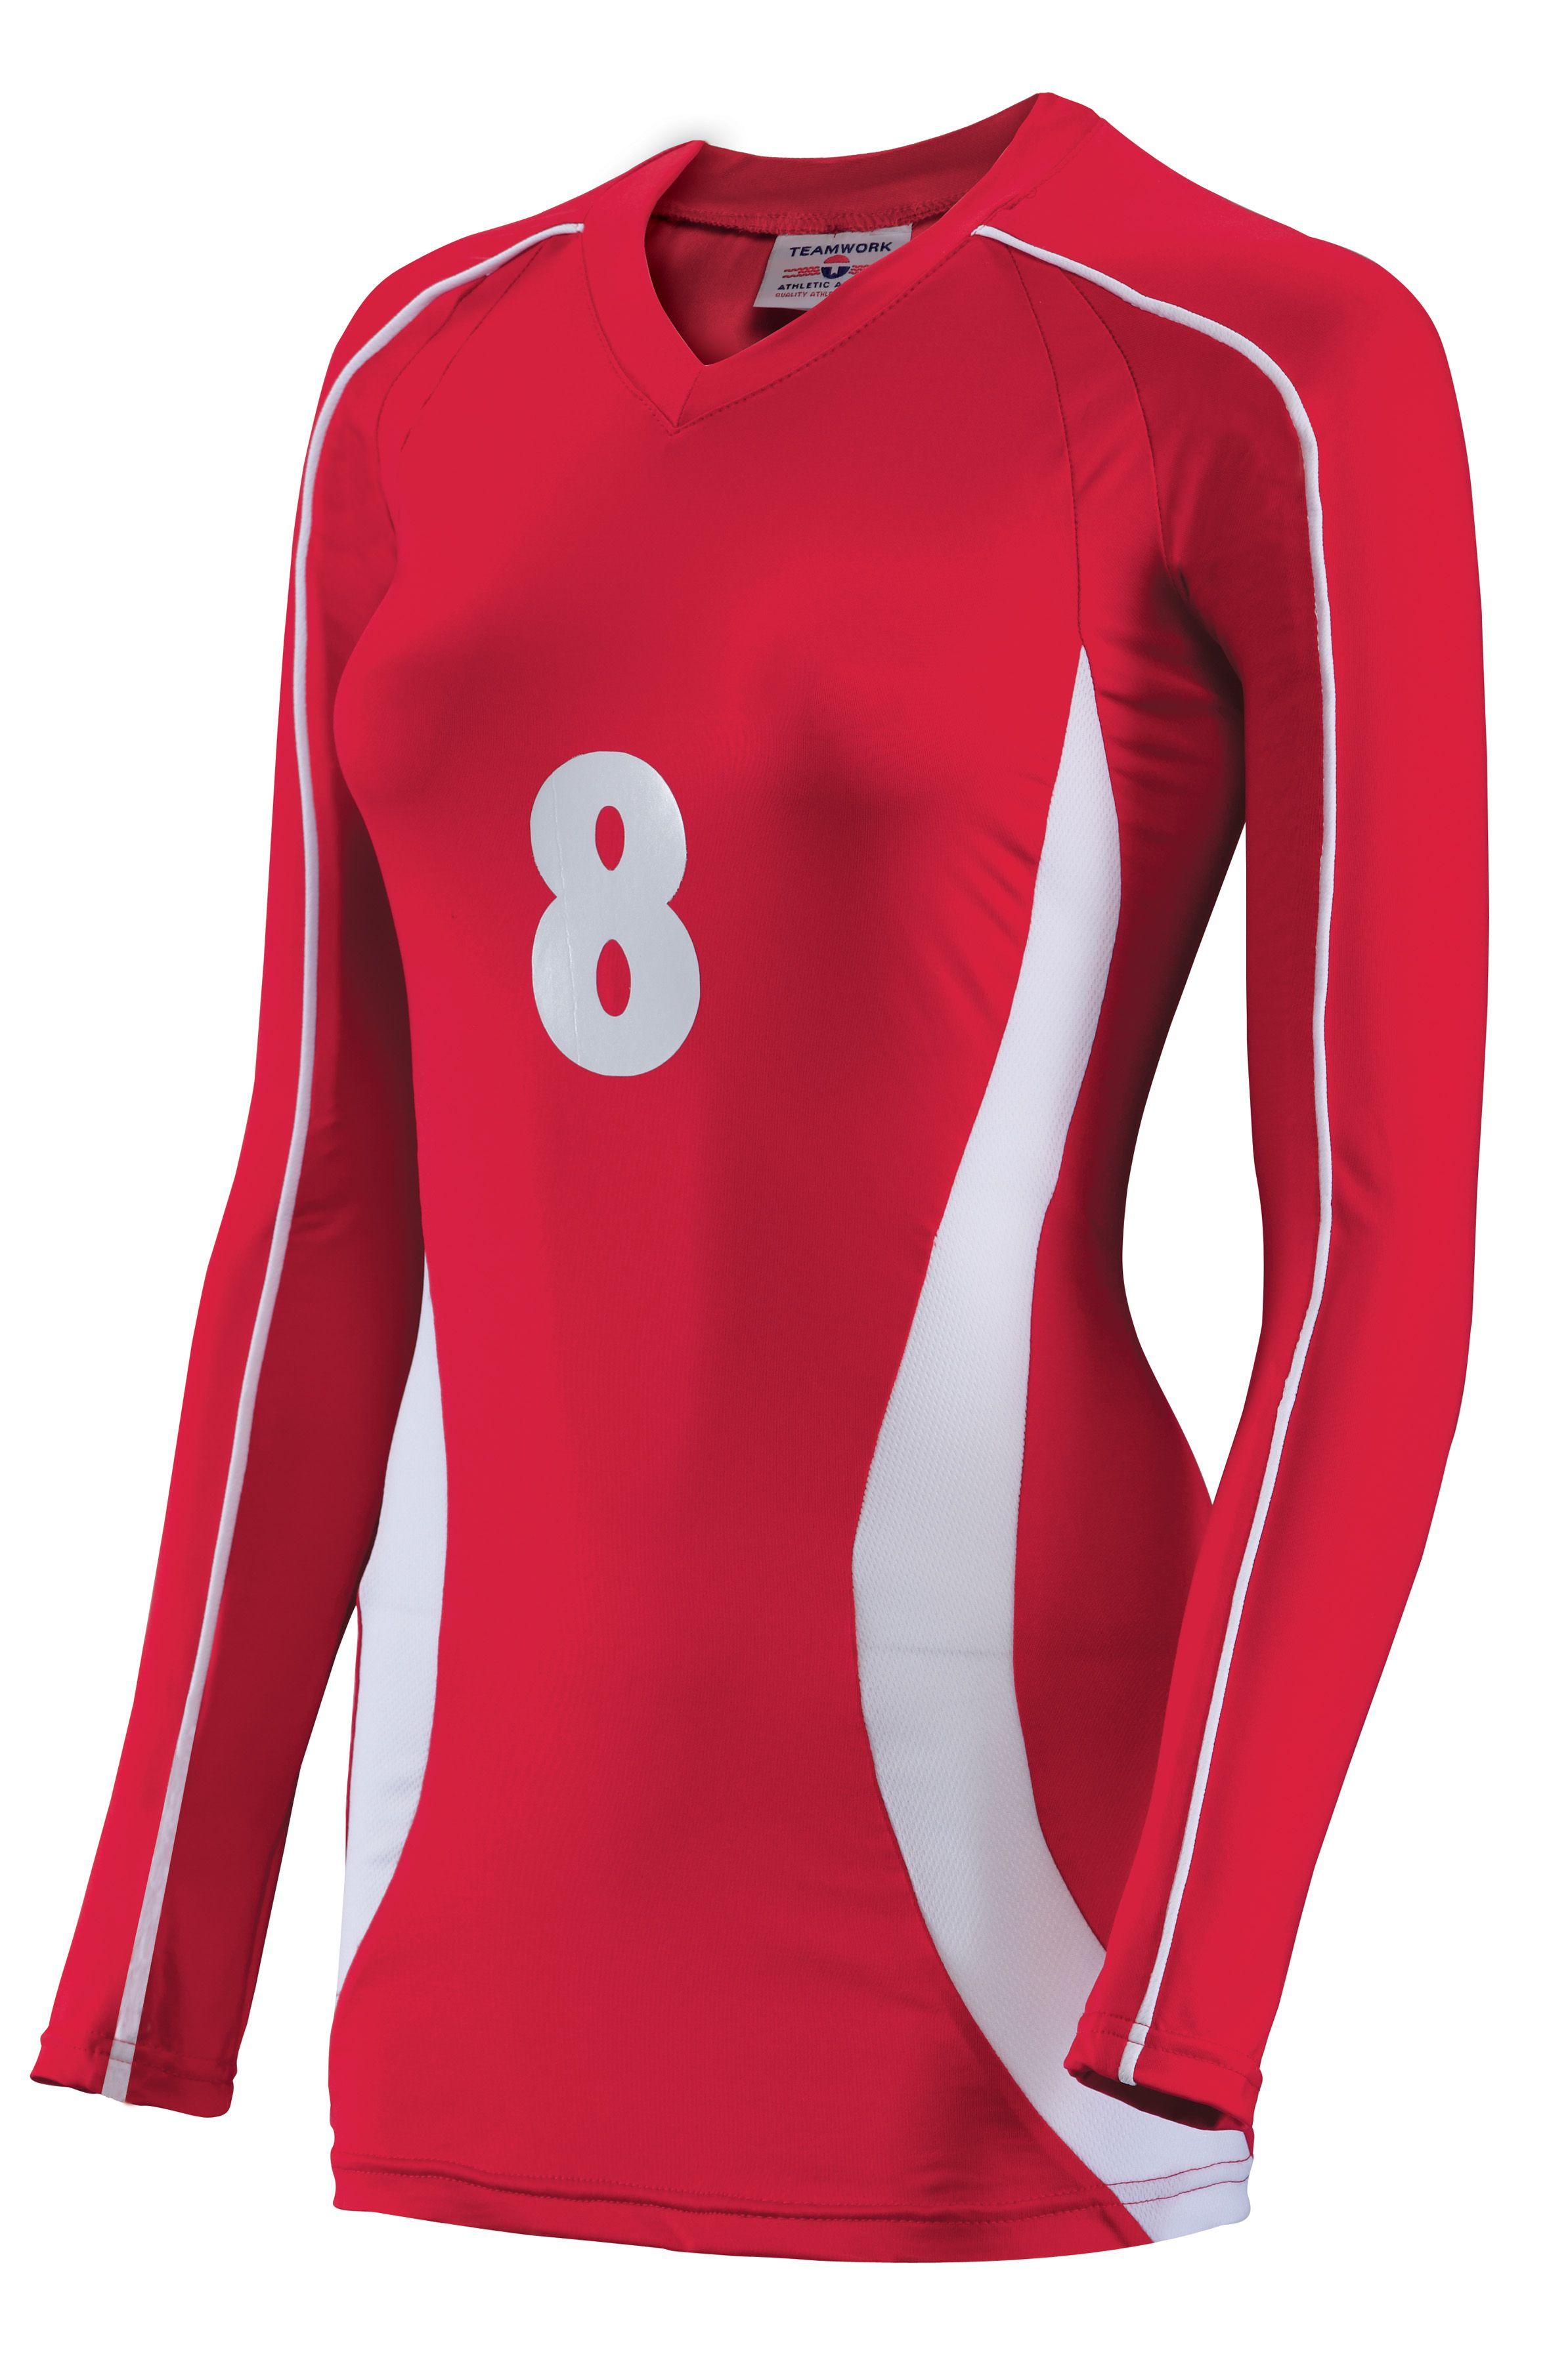 Softball Uniforms Pictures Discount Volleyball Uniforms Basketball Uniforms Design Womens Workout Outfits Gym Wear For Women